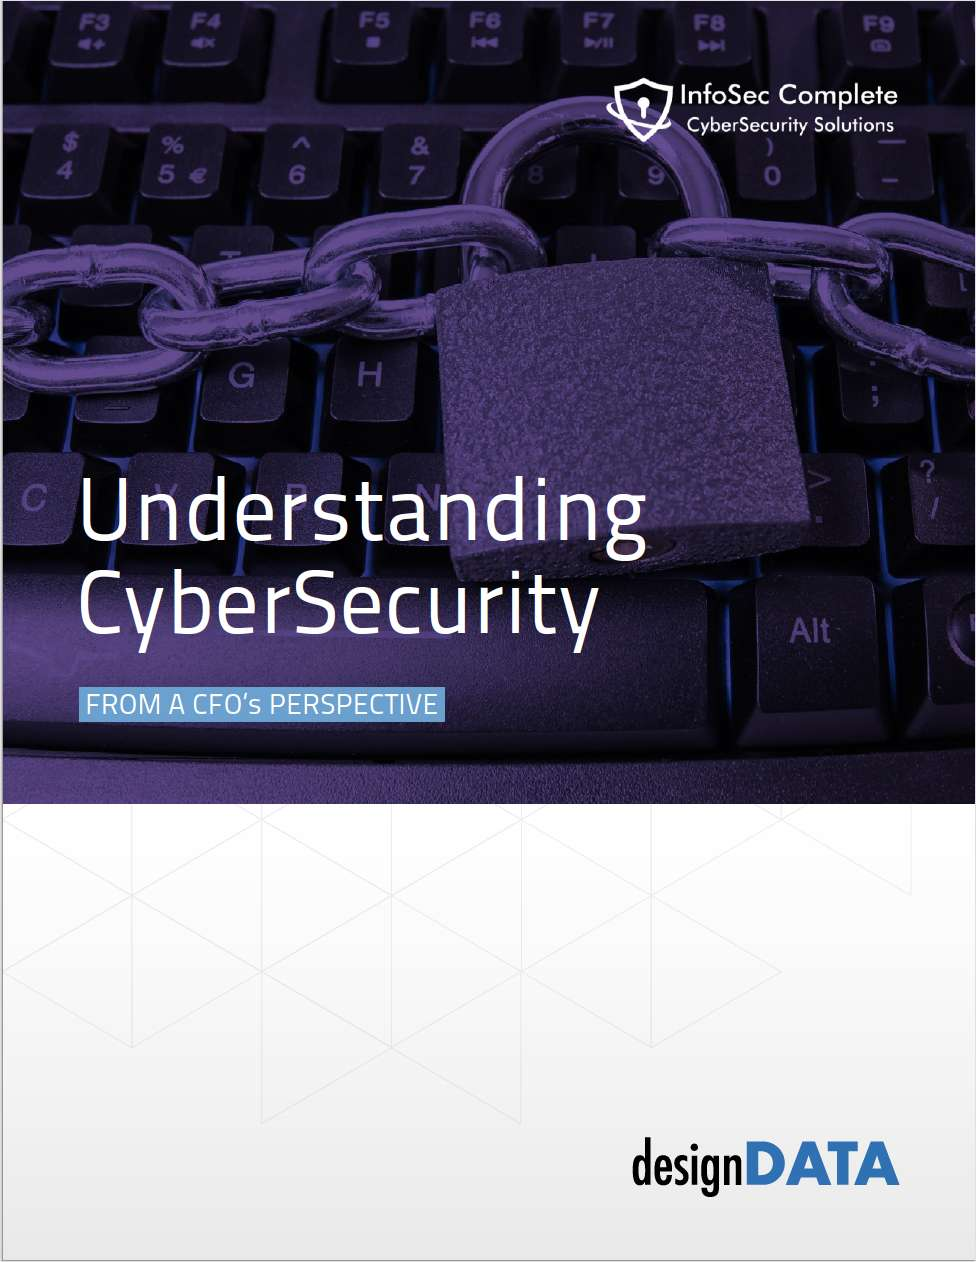 Understanding Cyber Security from a CFO's Perspective